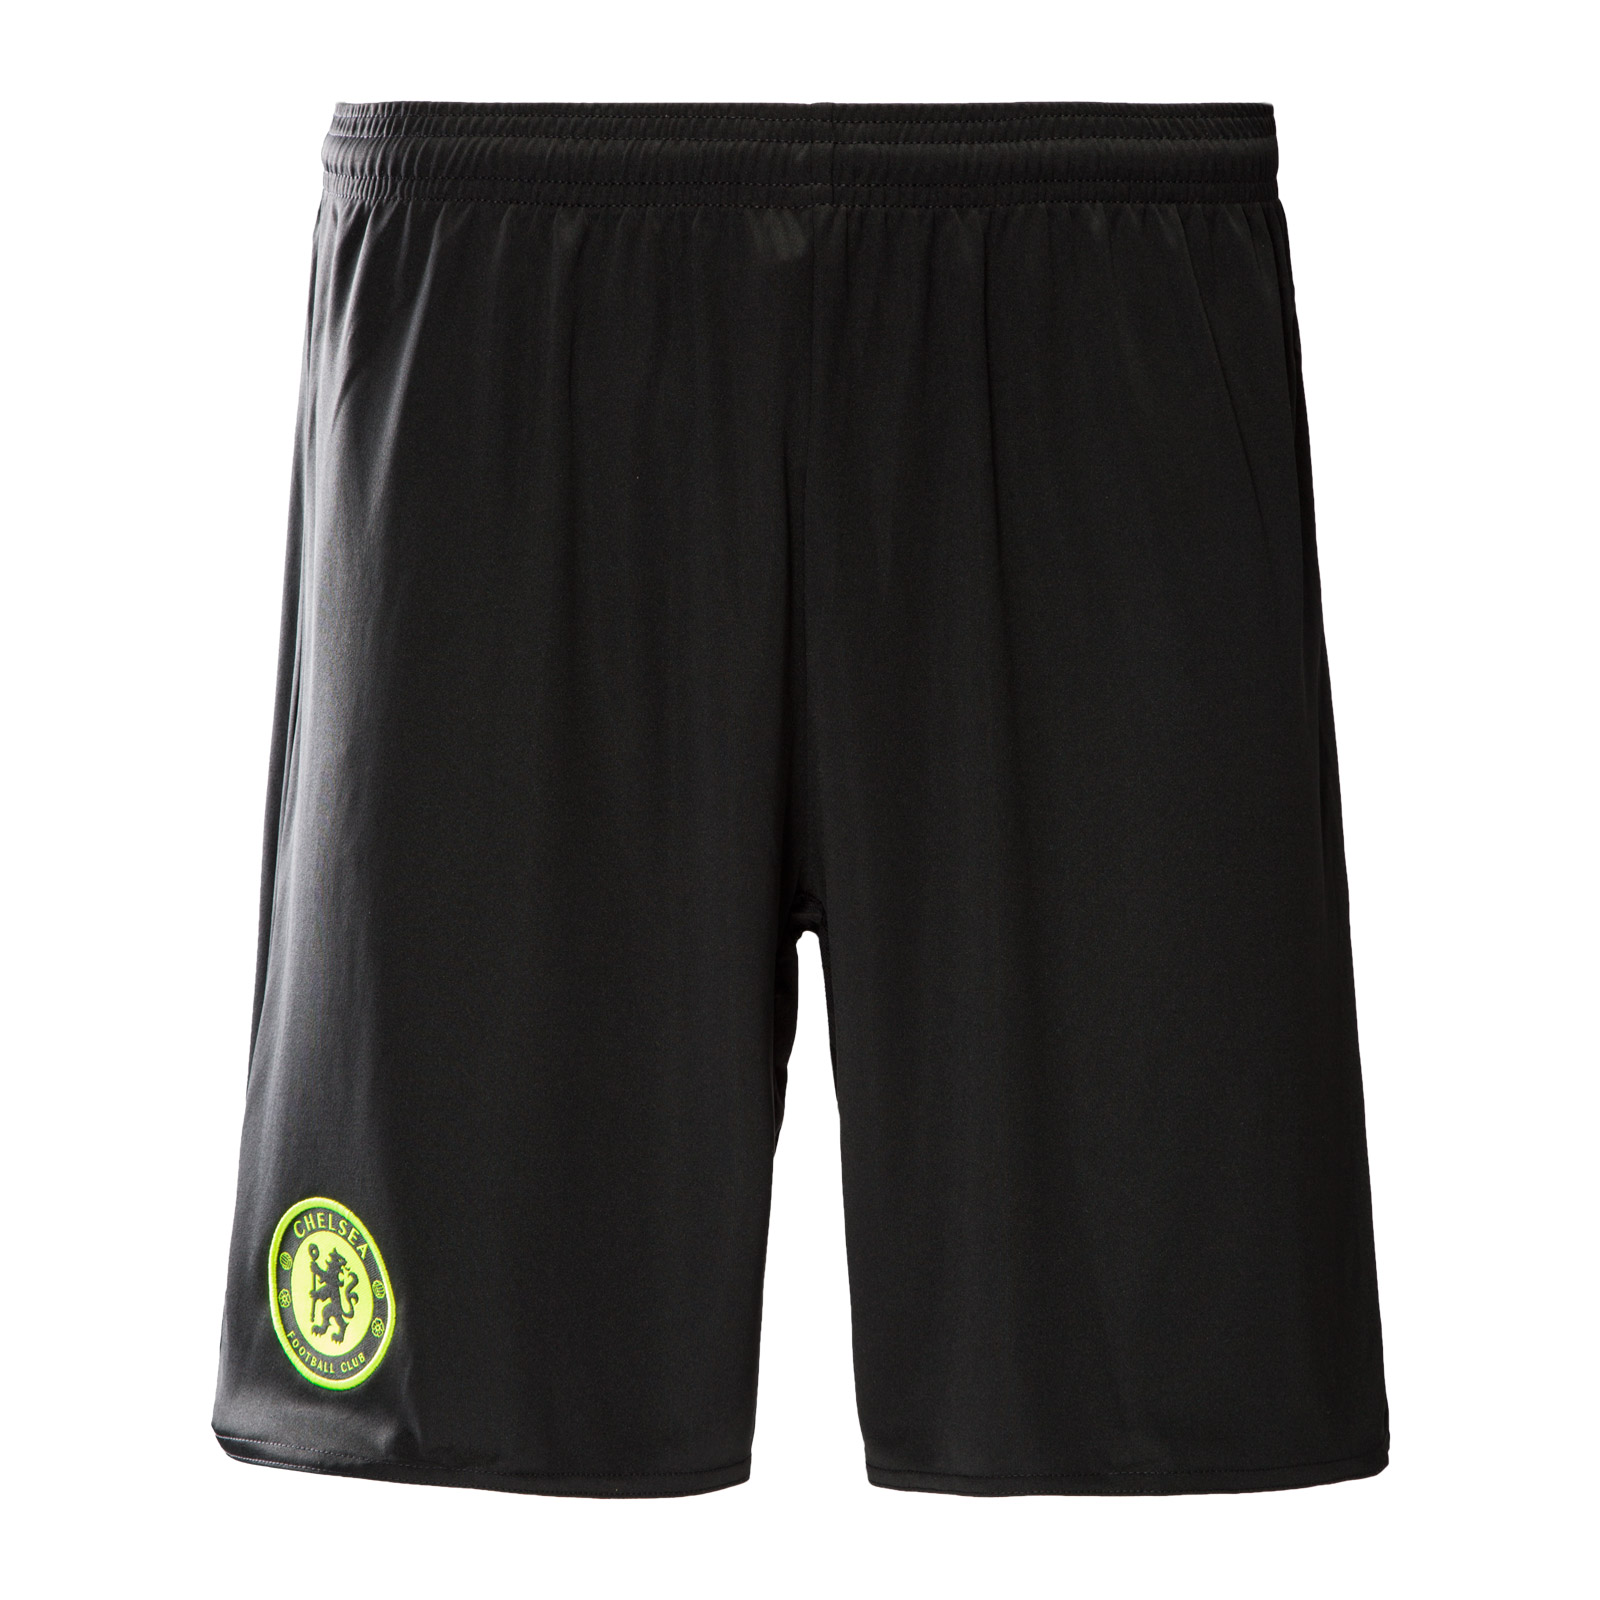 2016-2017 Chelsea Adidas Away Shorts (Black)